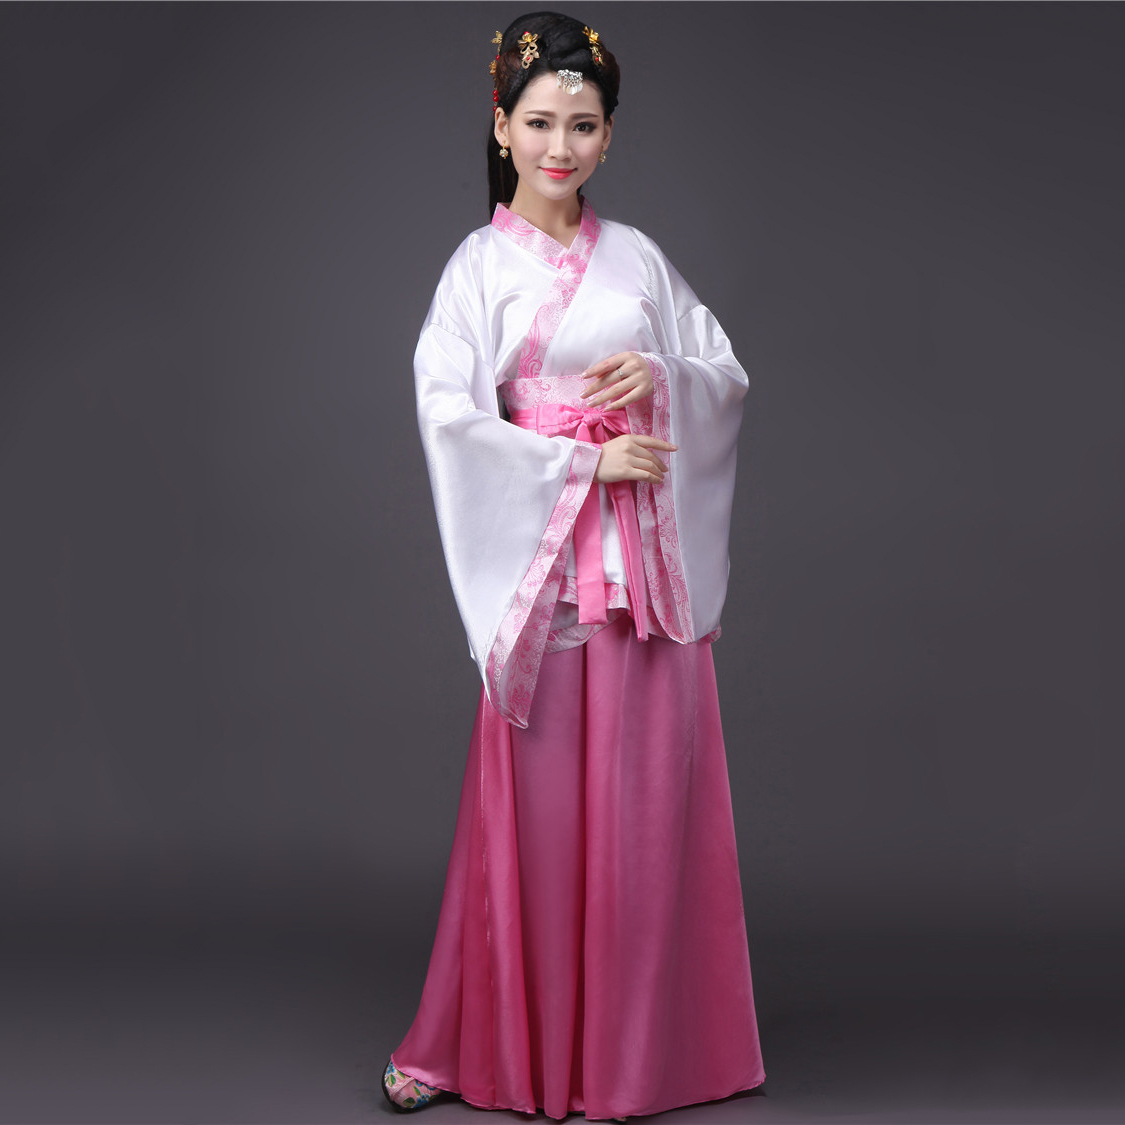 Women's Dress For Oriental Dancing Hanfu Female Traditional Chinese Clothing Purple Blue Red Pink White Hanfu Dance Dress